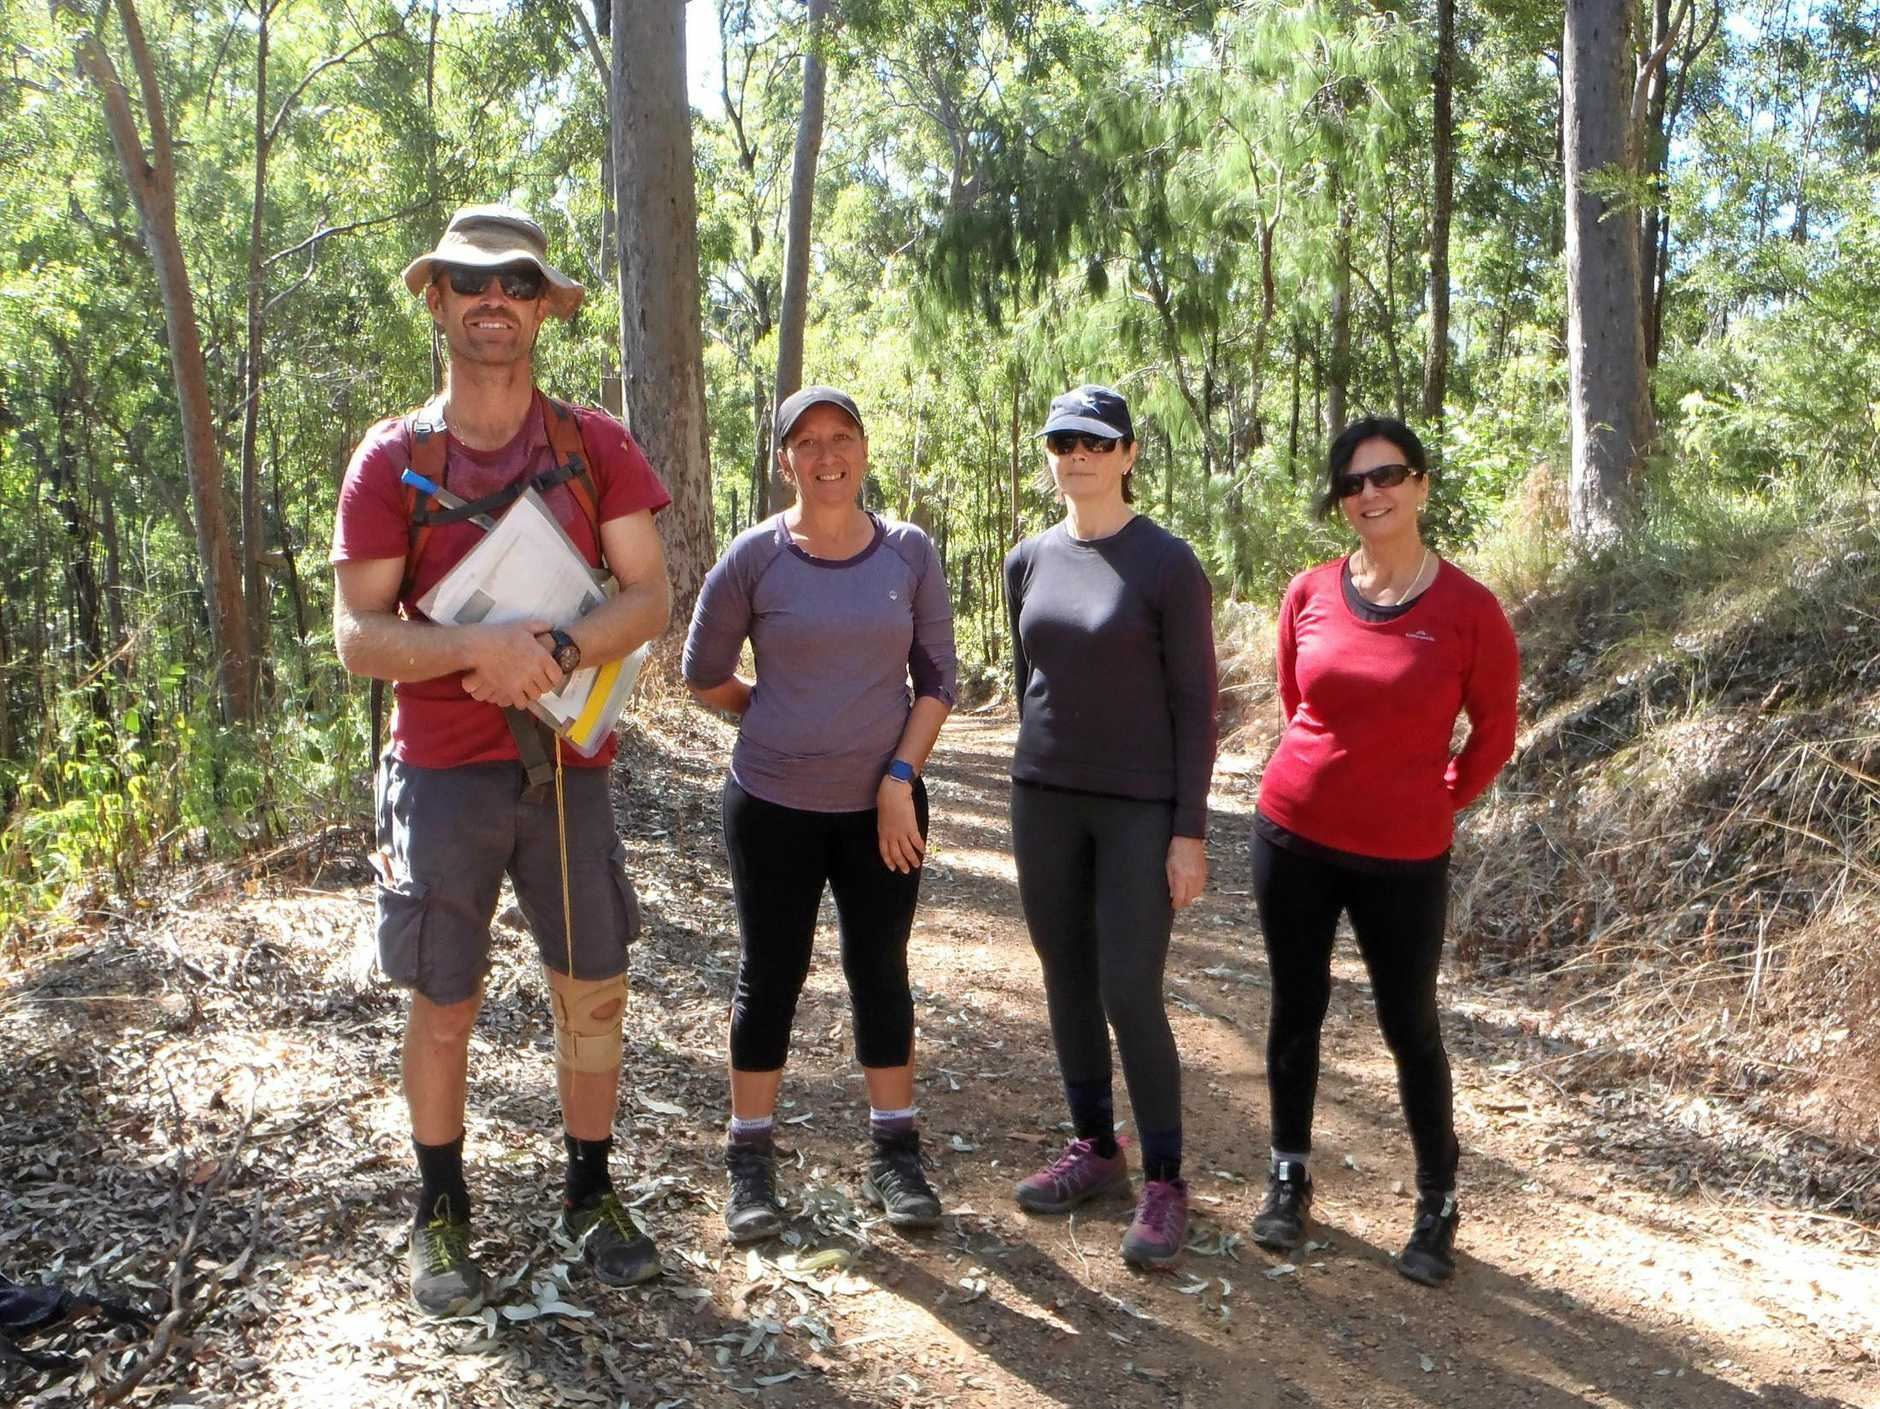 GET WALKING: Redbank resident Hans and his team who will take on the 100km endurance challenge of a lifetime in the Oxfam Trailwalker event. (From left) Hans Young, Caroline Susan Mita, Carmel Carver, Catherine Carter.